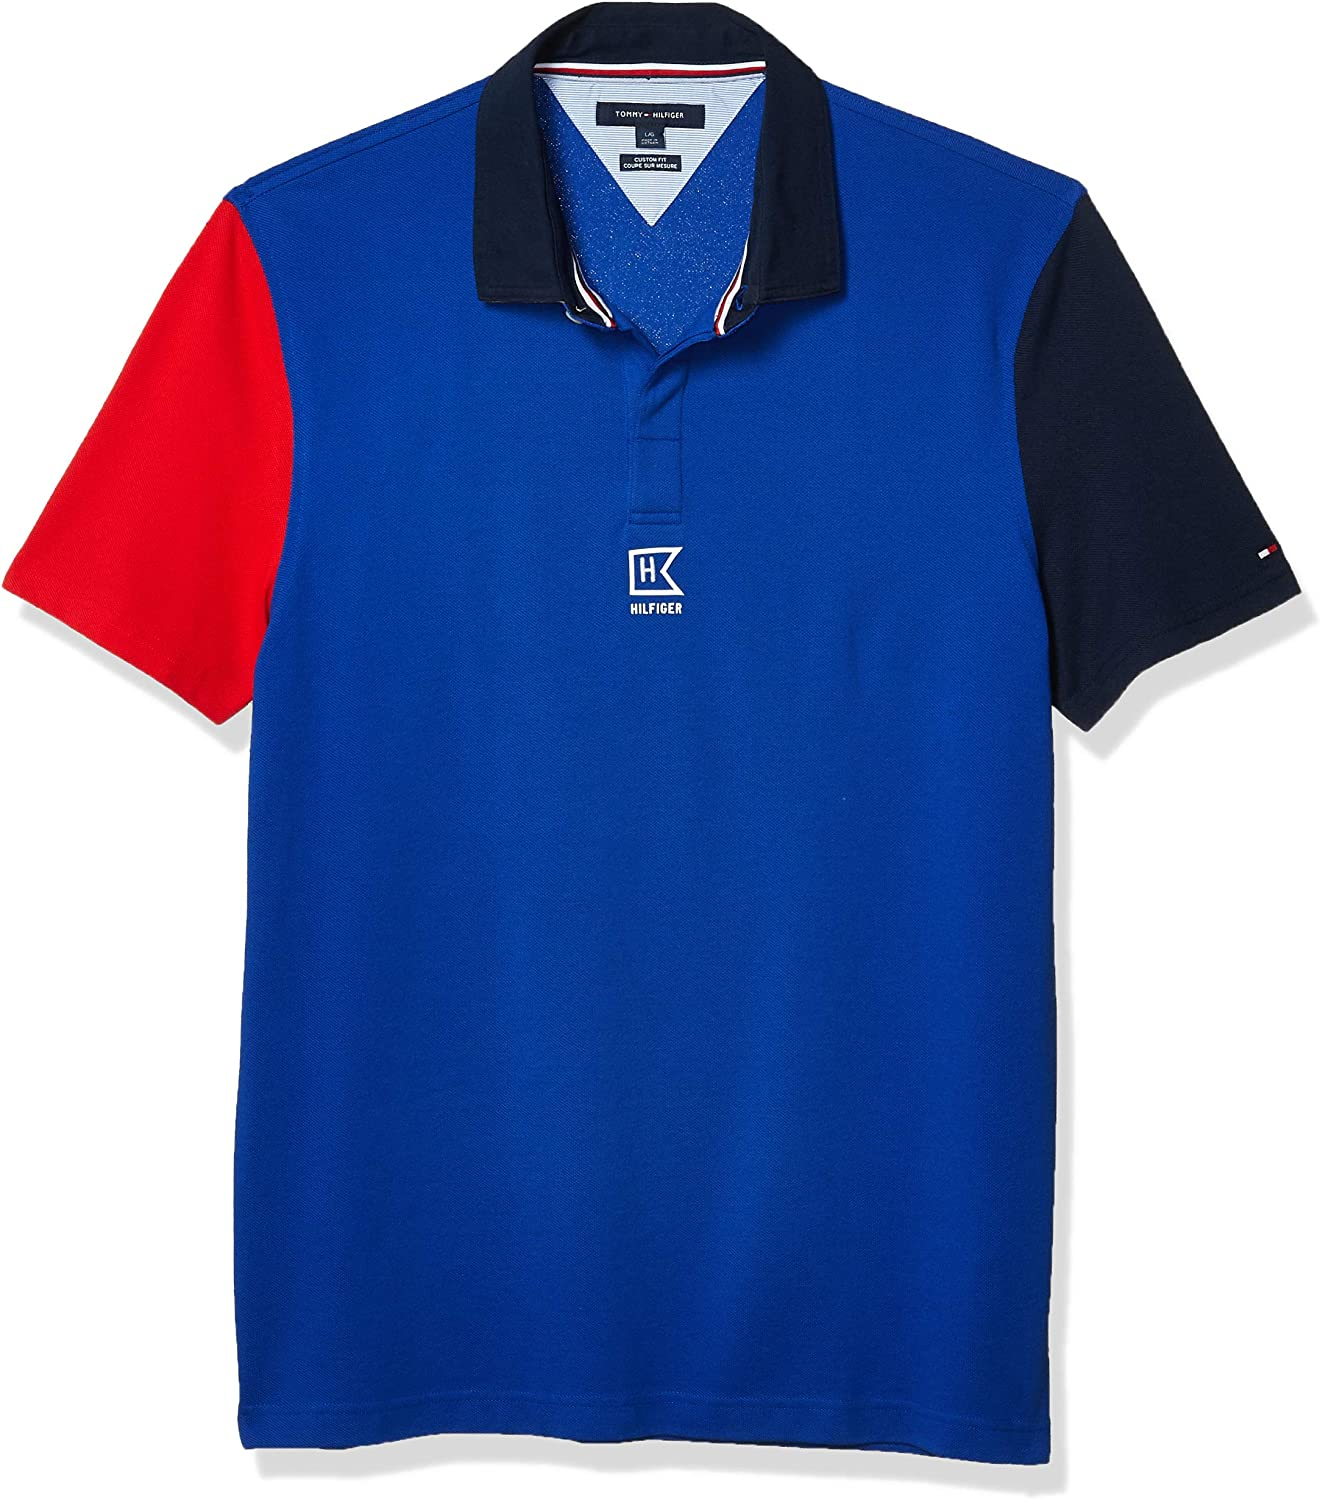 Tommy Hilfiger Mens Mens Short Sleeve Patterned Polo Shirt in Custom Fit Polo Shirt